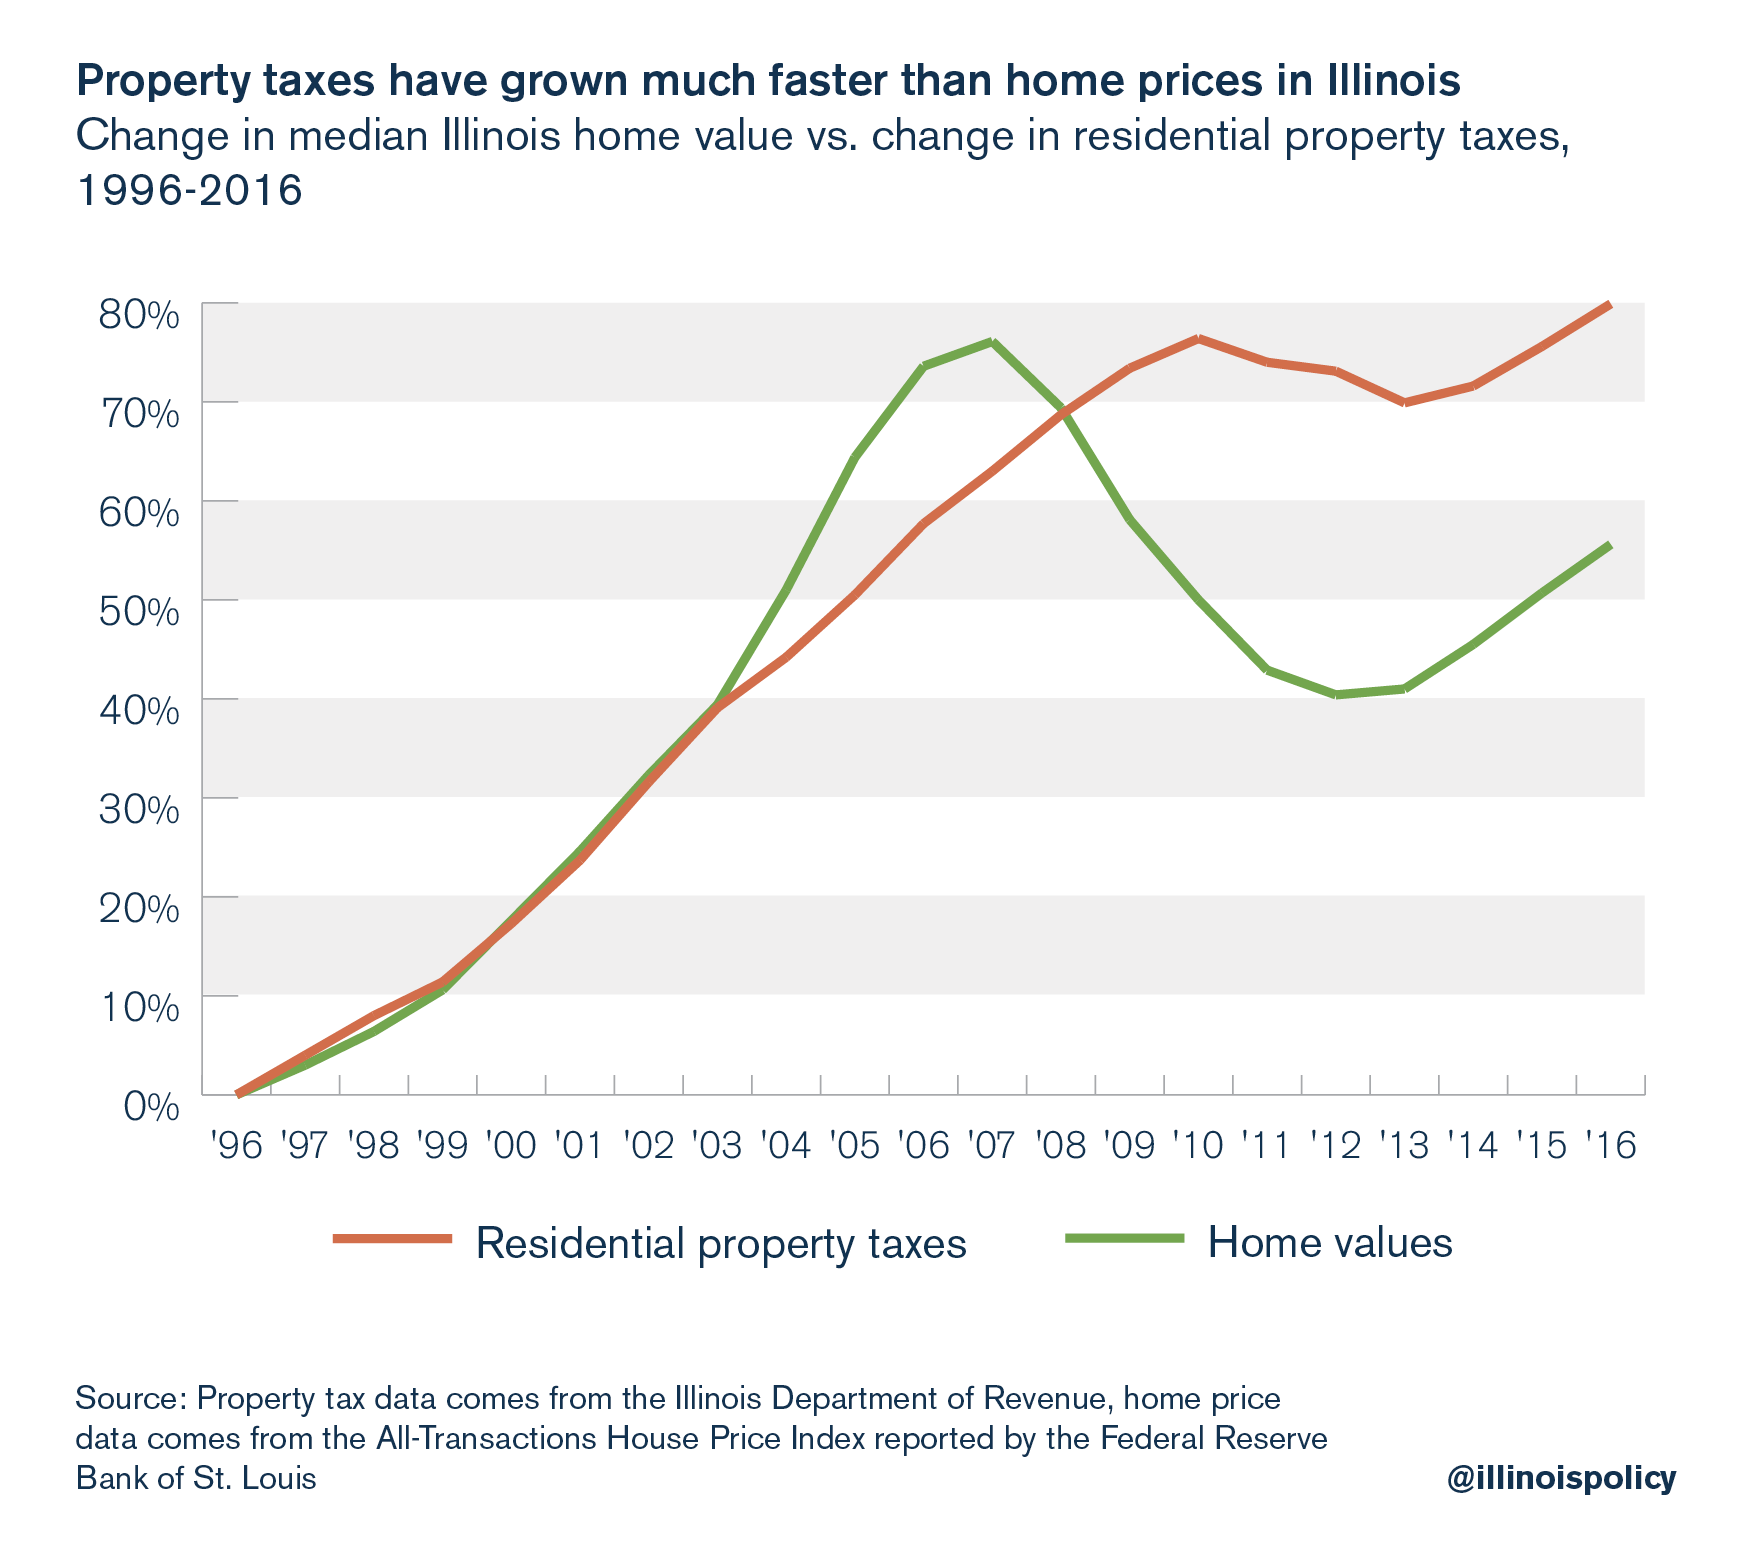 Property taxes have grown much faster than home prices in Illinois